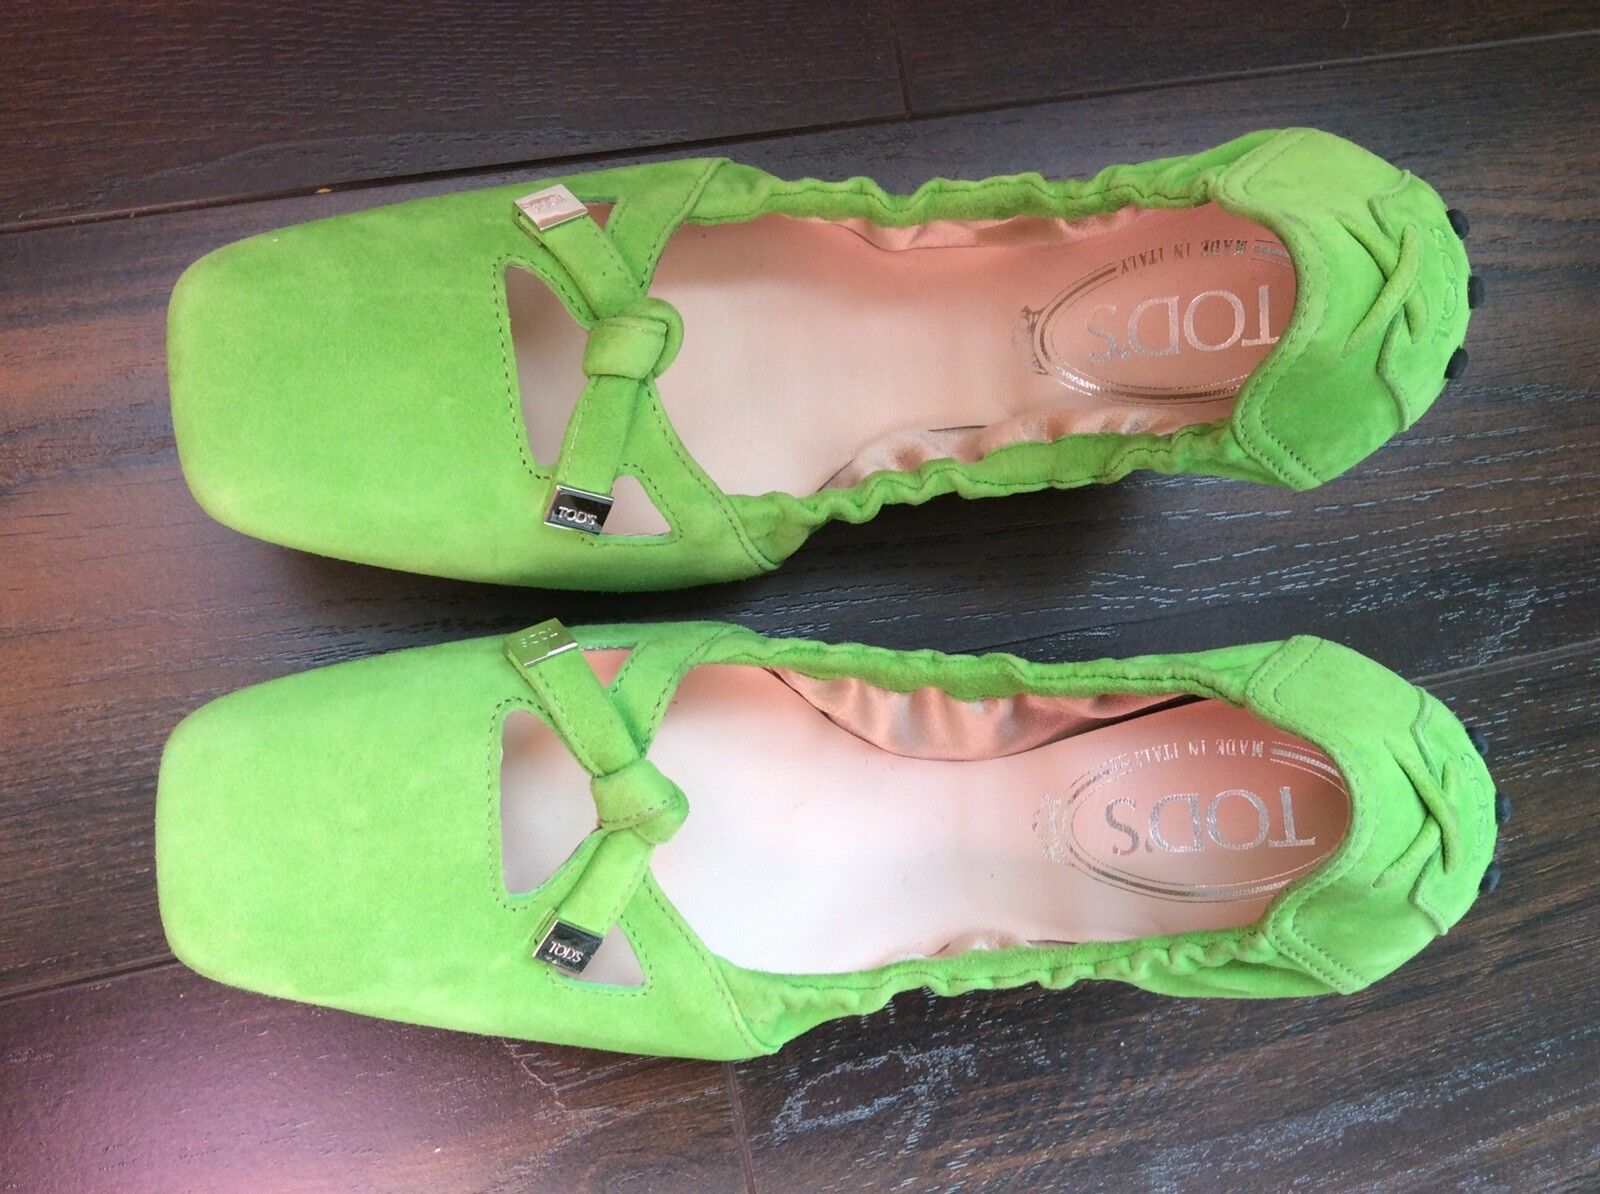 TODS Ballerina Ballet Flats Driving Square Toe Bow Tie Scrunch Shoes Size 7.5